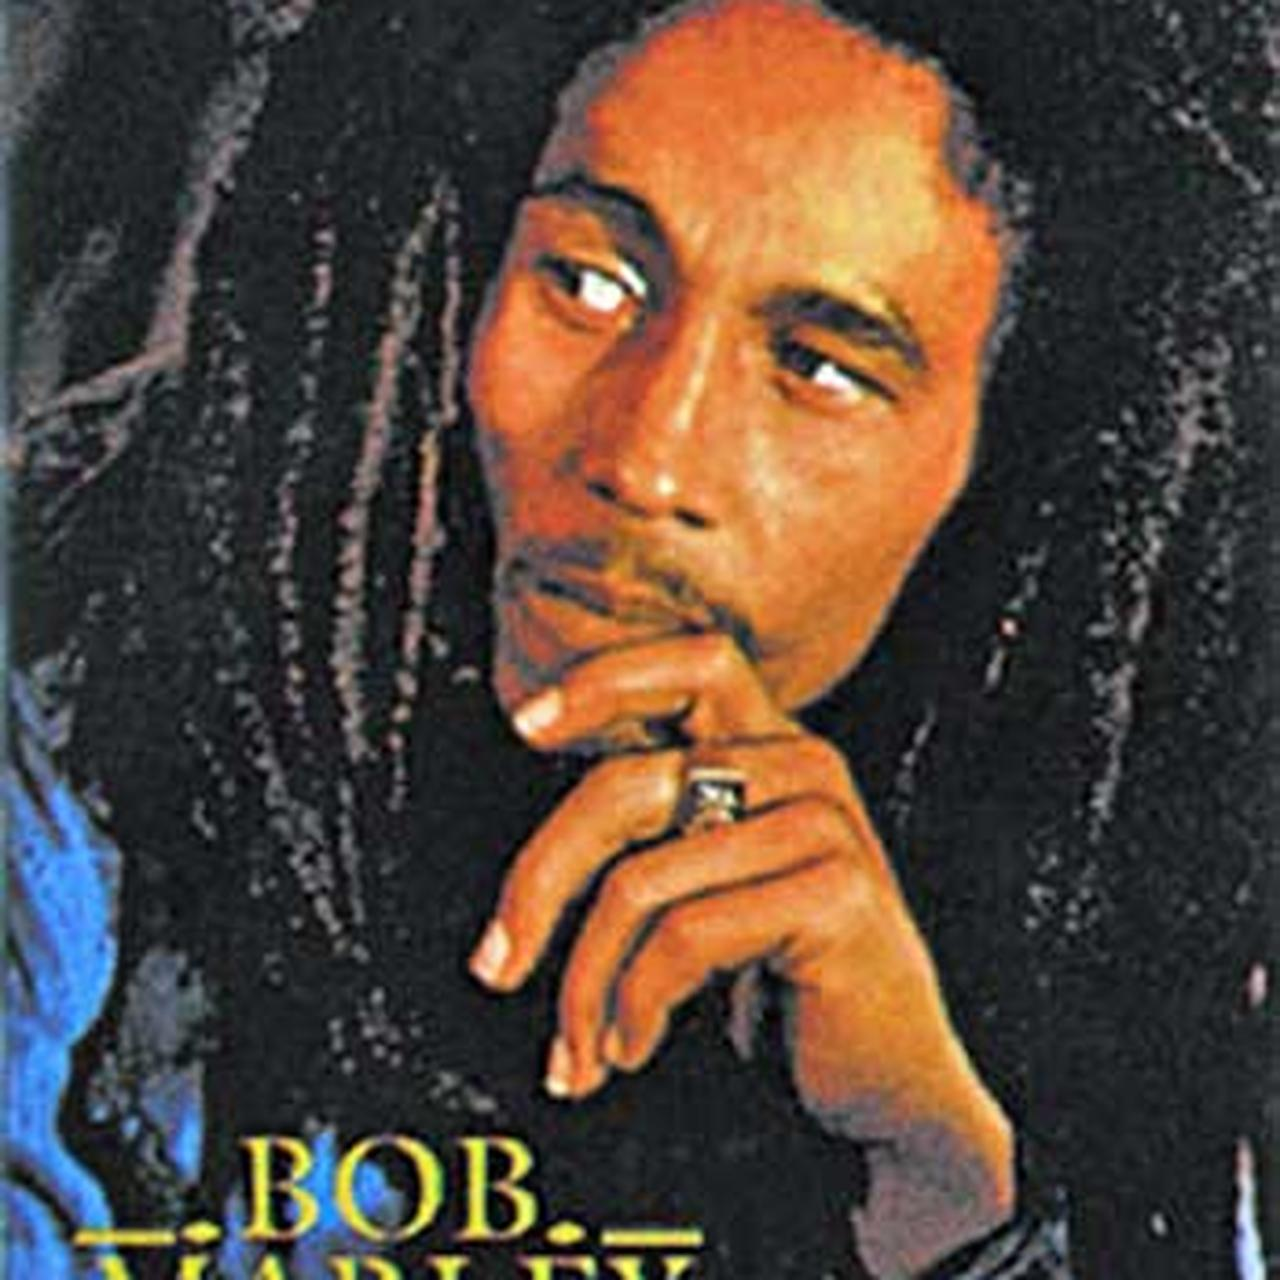 Bob marley legend cd fabric poster bob marley legend cd fabric poster altavistaventures